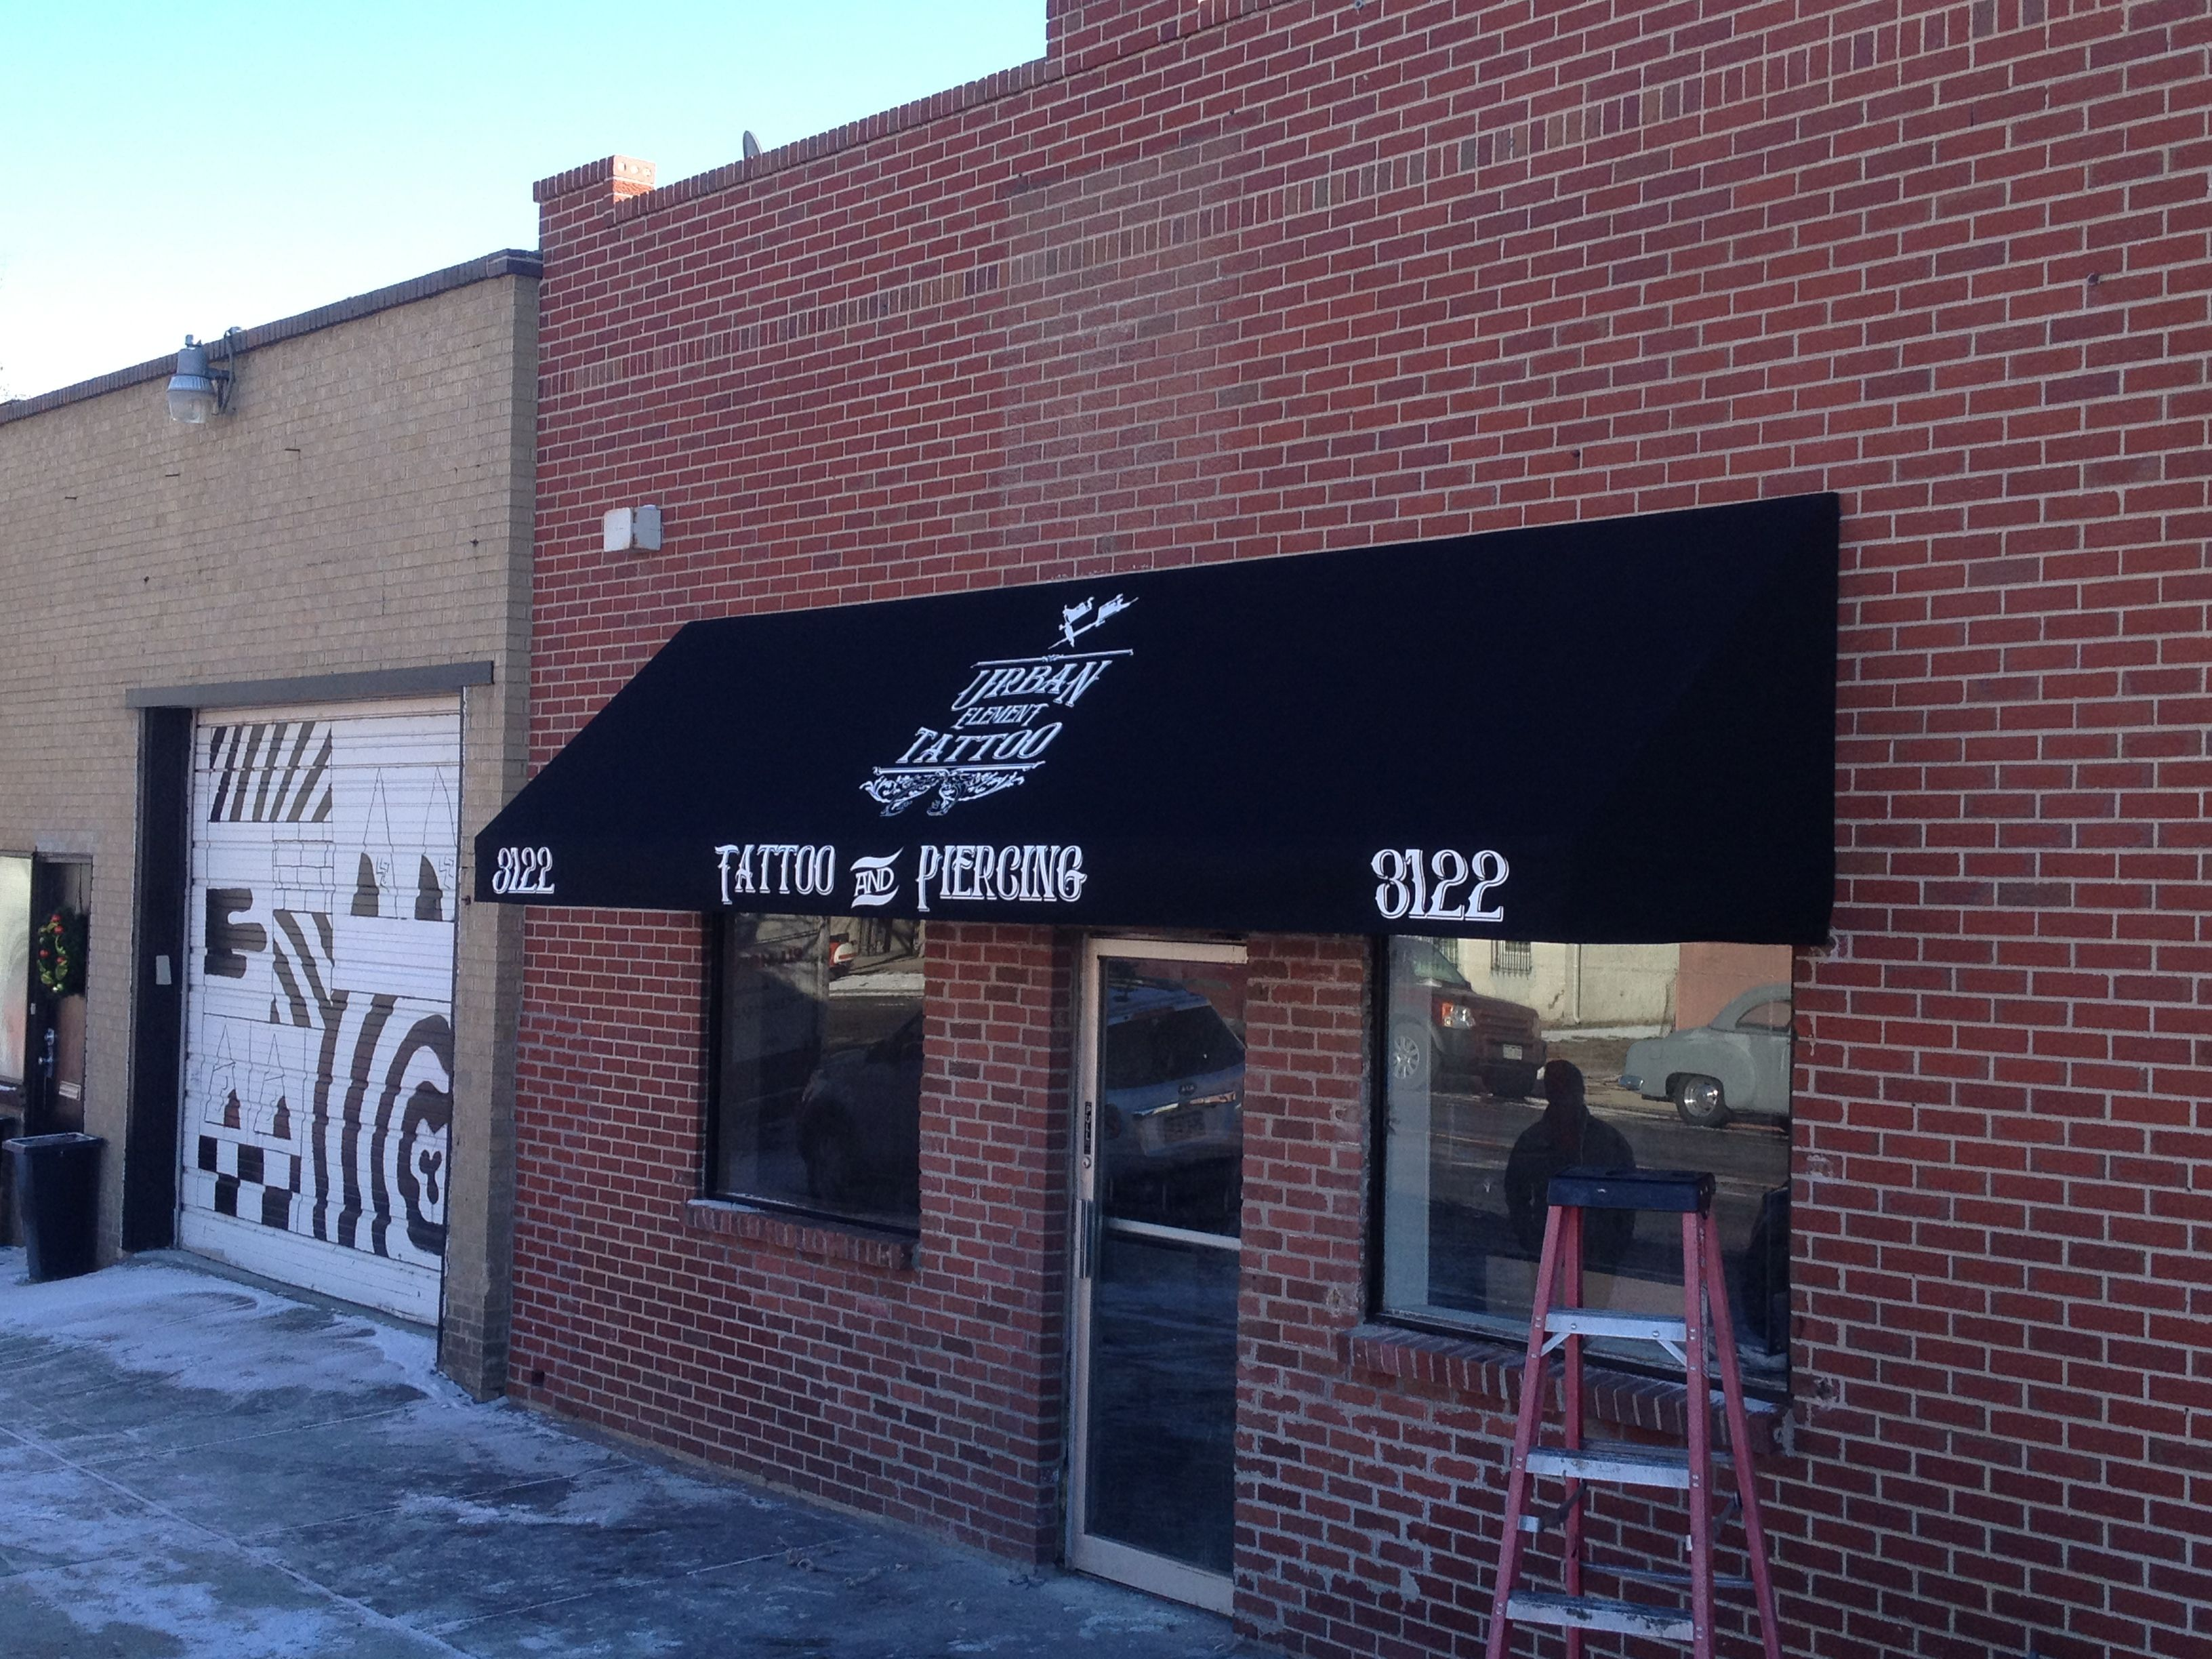 Finished Awning Installed New Fabric Custom Painted Logo Business Name And Street